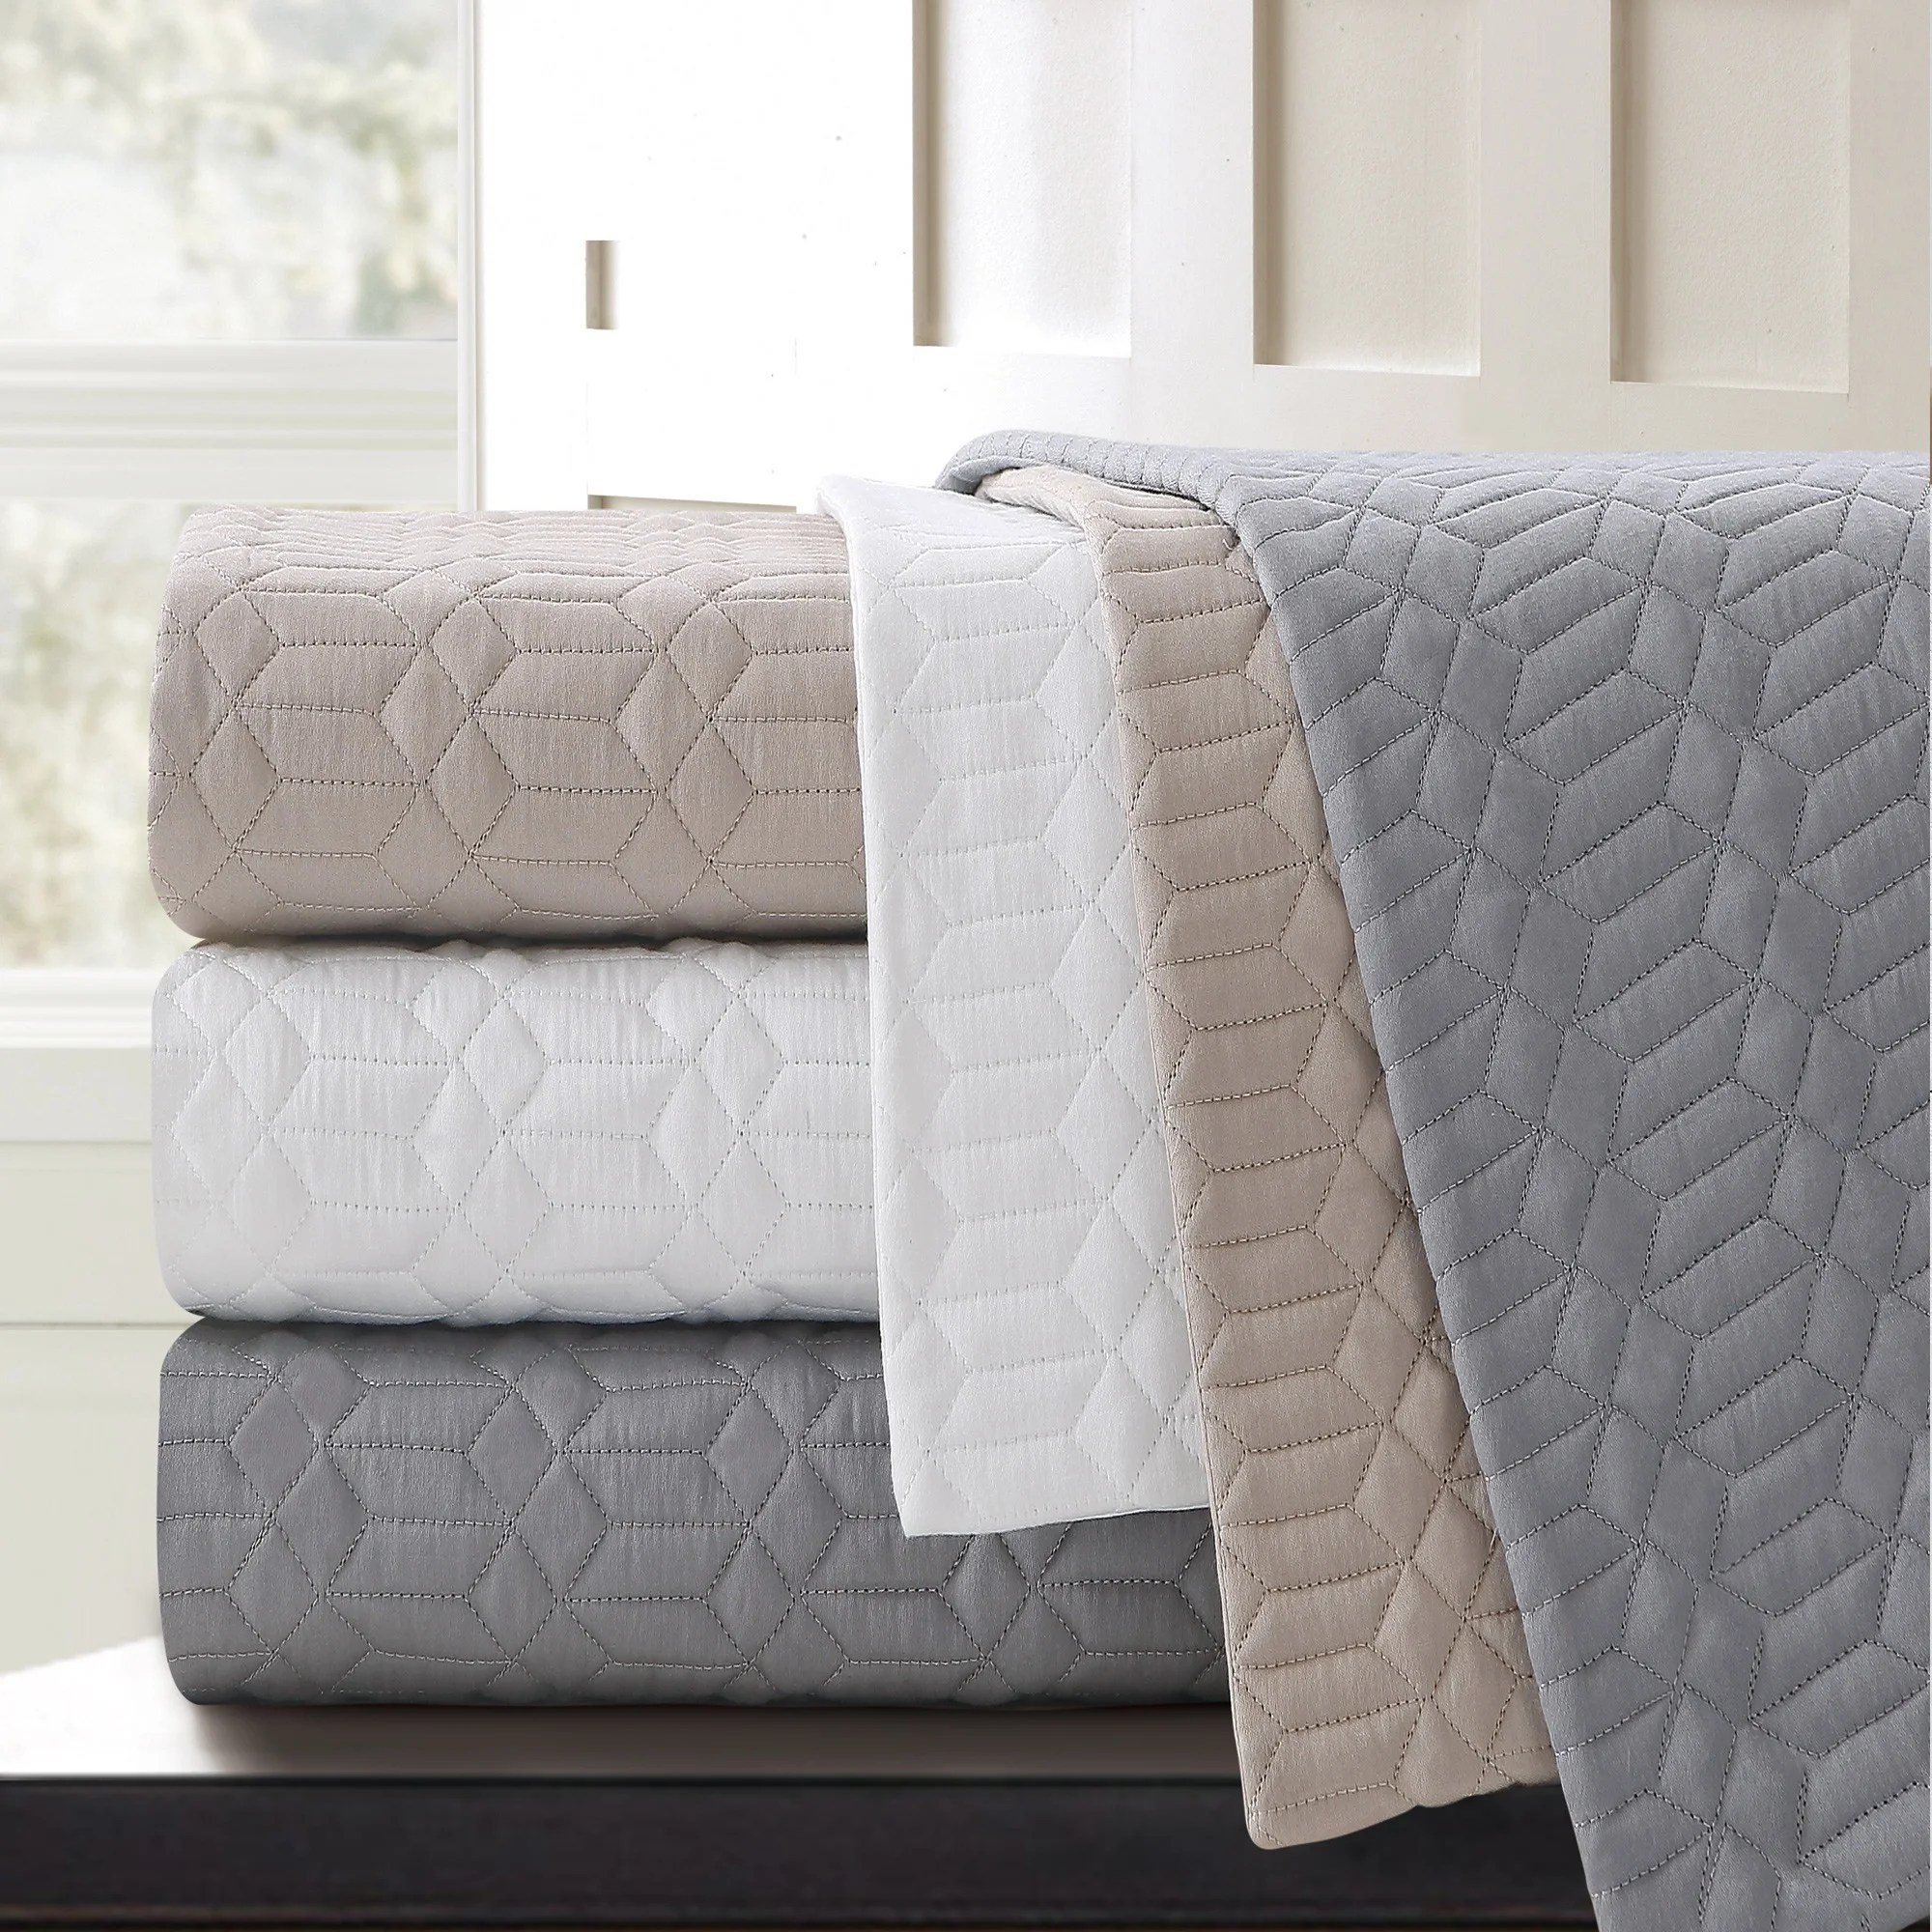 Single Coverlet Echelon Home Echelon Laguna Quilted Cotton Coverlet